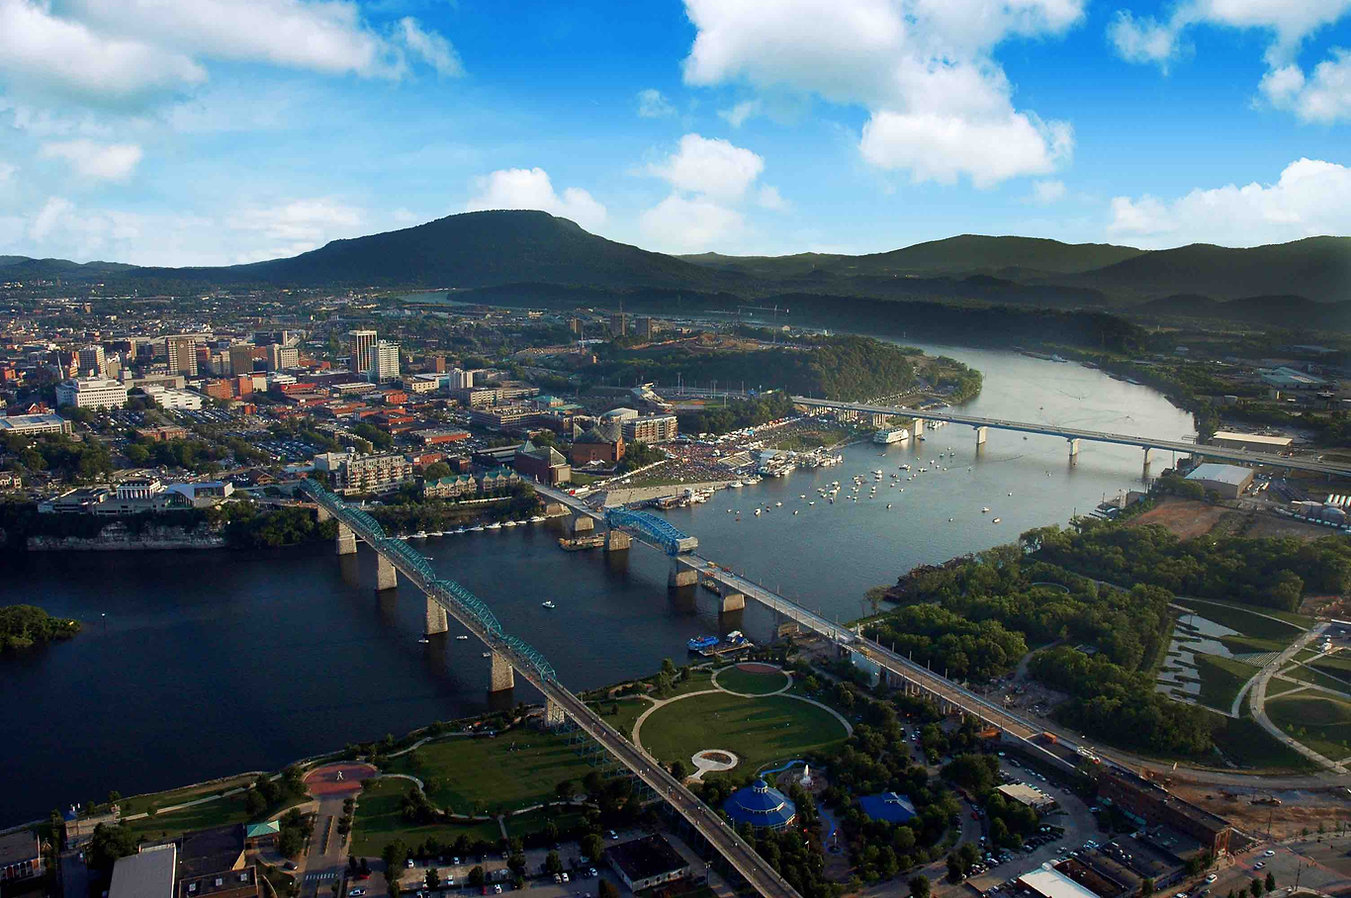 Chattanooga Tennessee riverfront, compounding clean room, impact air sampler, food safety, environmental monitoring